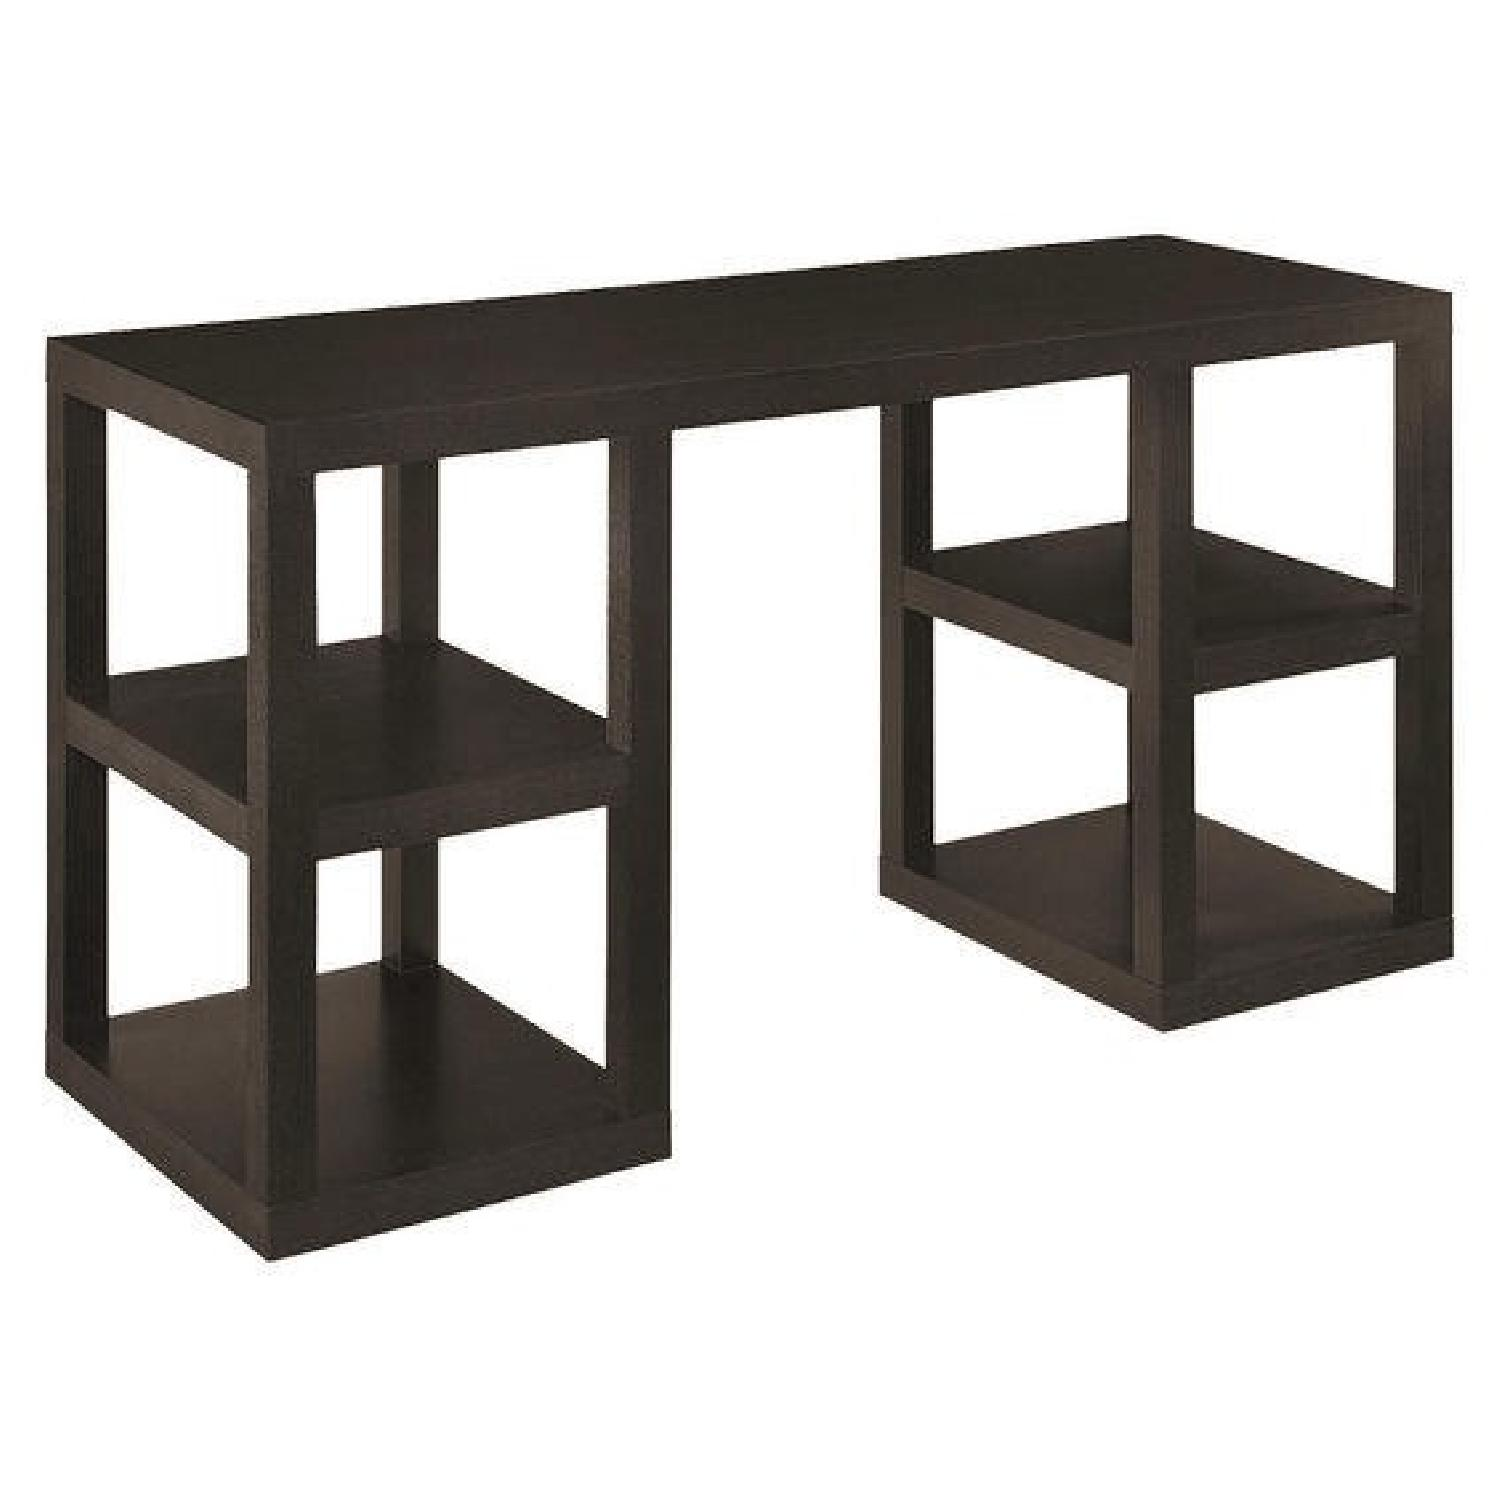 West Elm 2 X 2 Console Desk in Chocolate - image-0